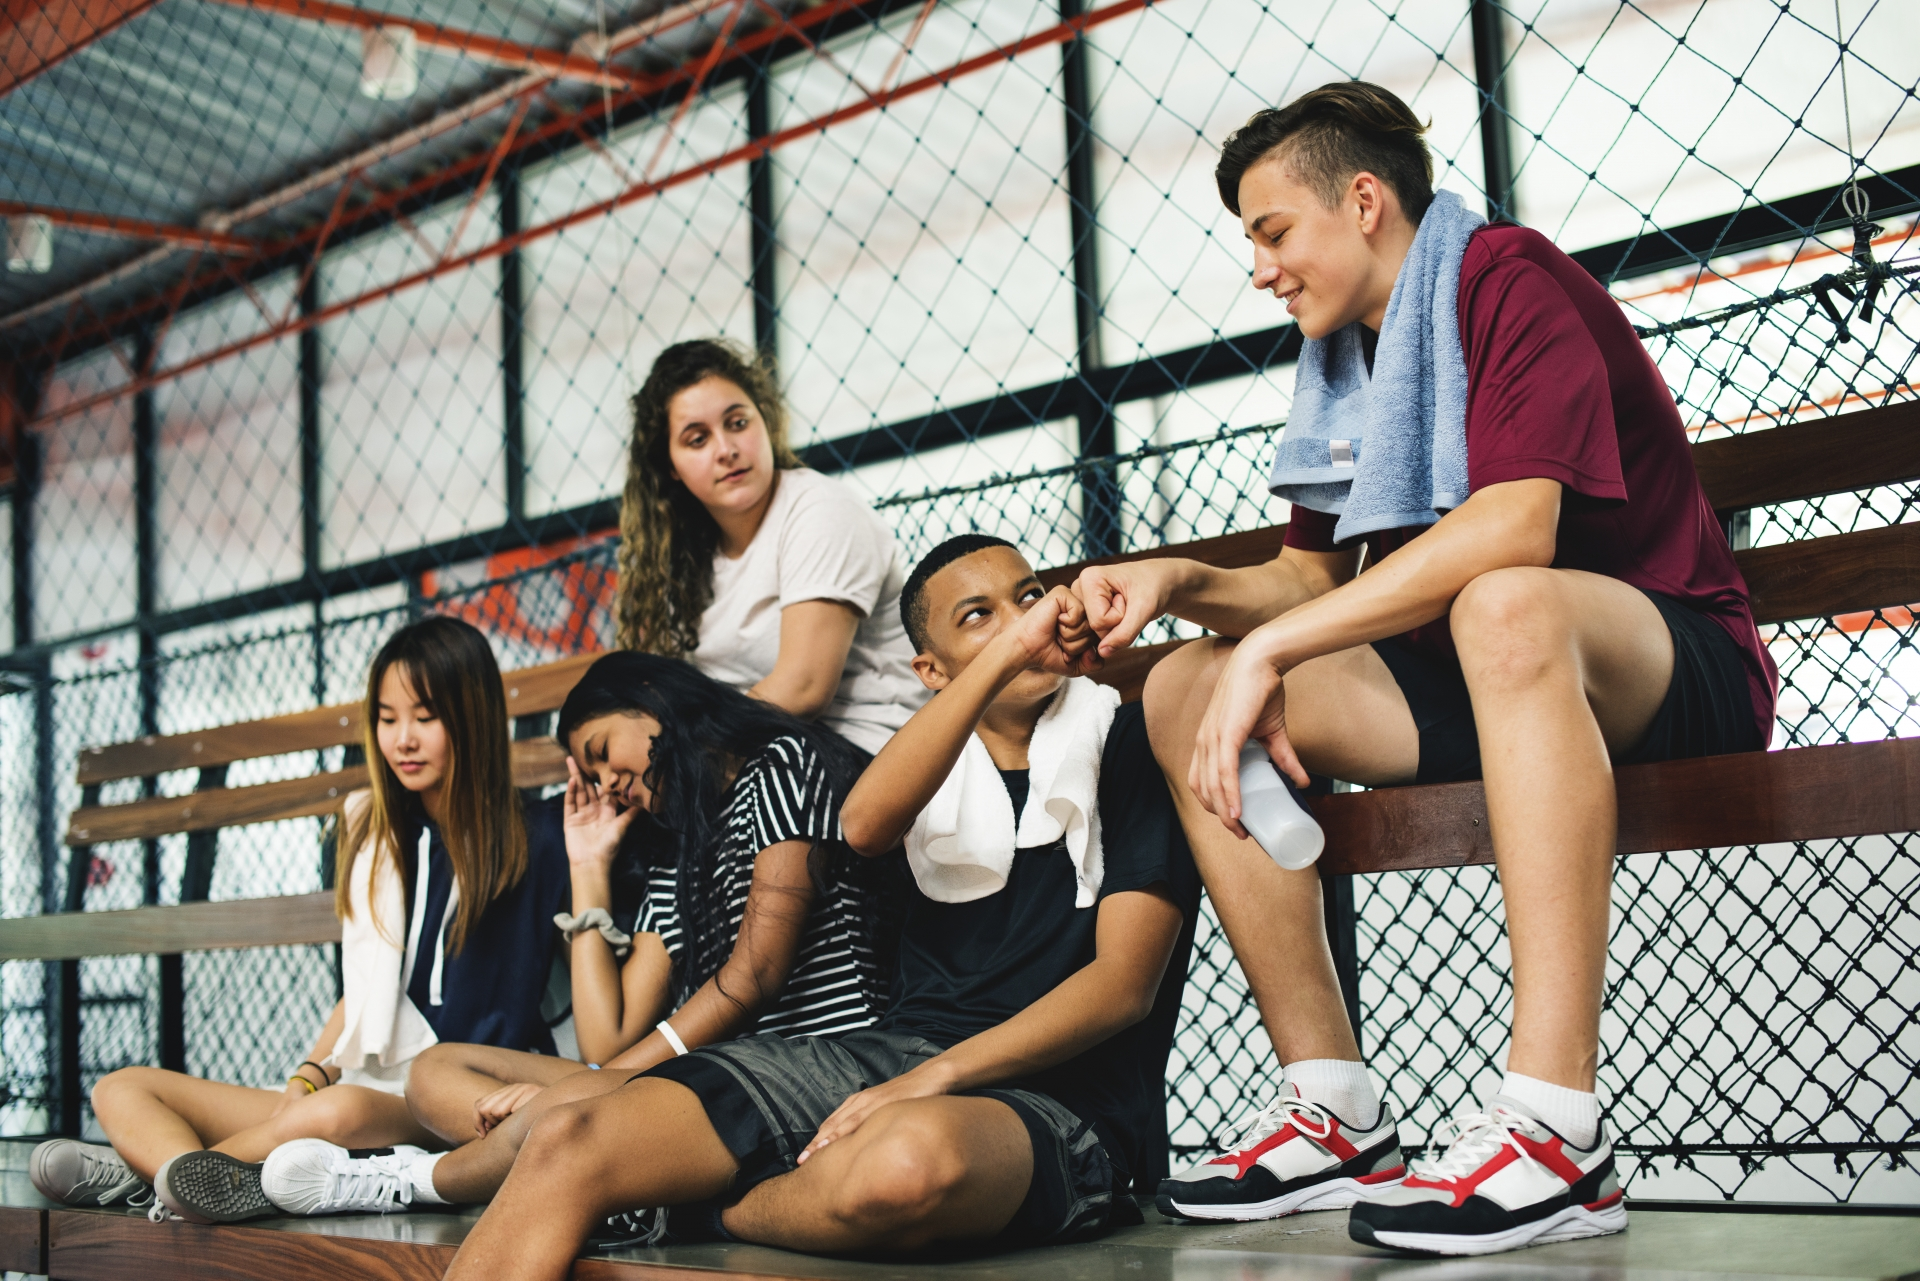 Today's Teens Might Be Better Law-Abiding Citizens Than Any Generation in 60 Years - Free Teens Youth - Changing Minds, Transforming Lives